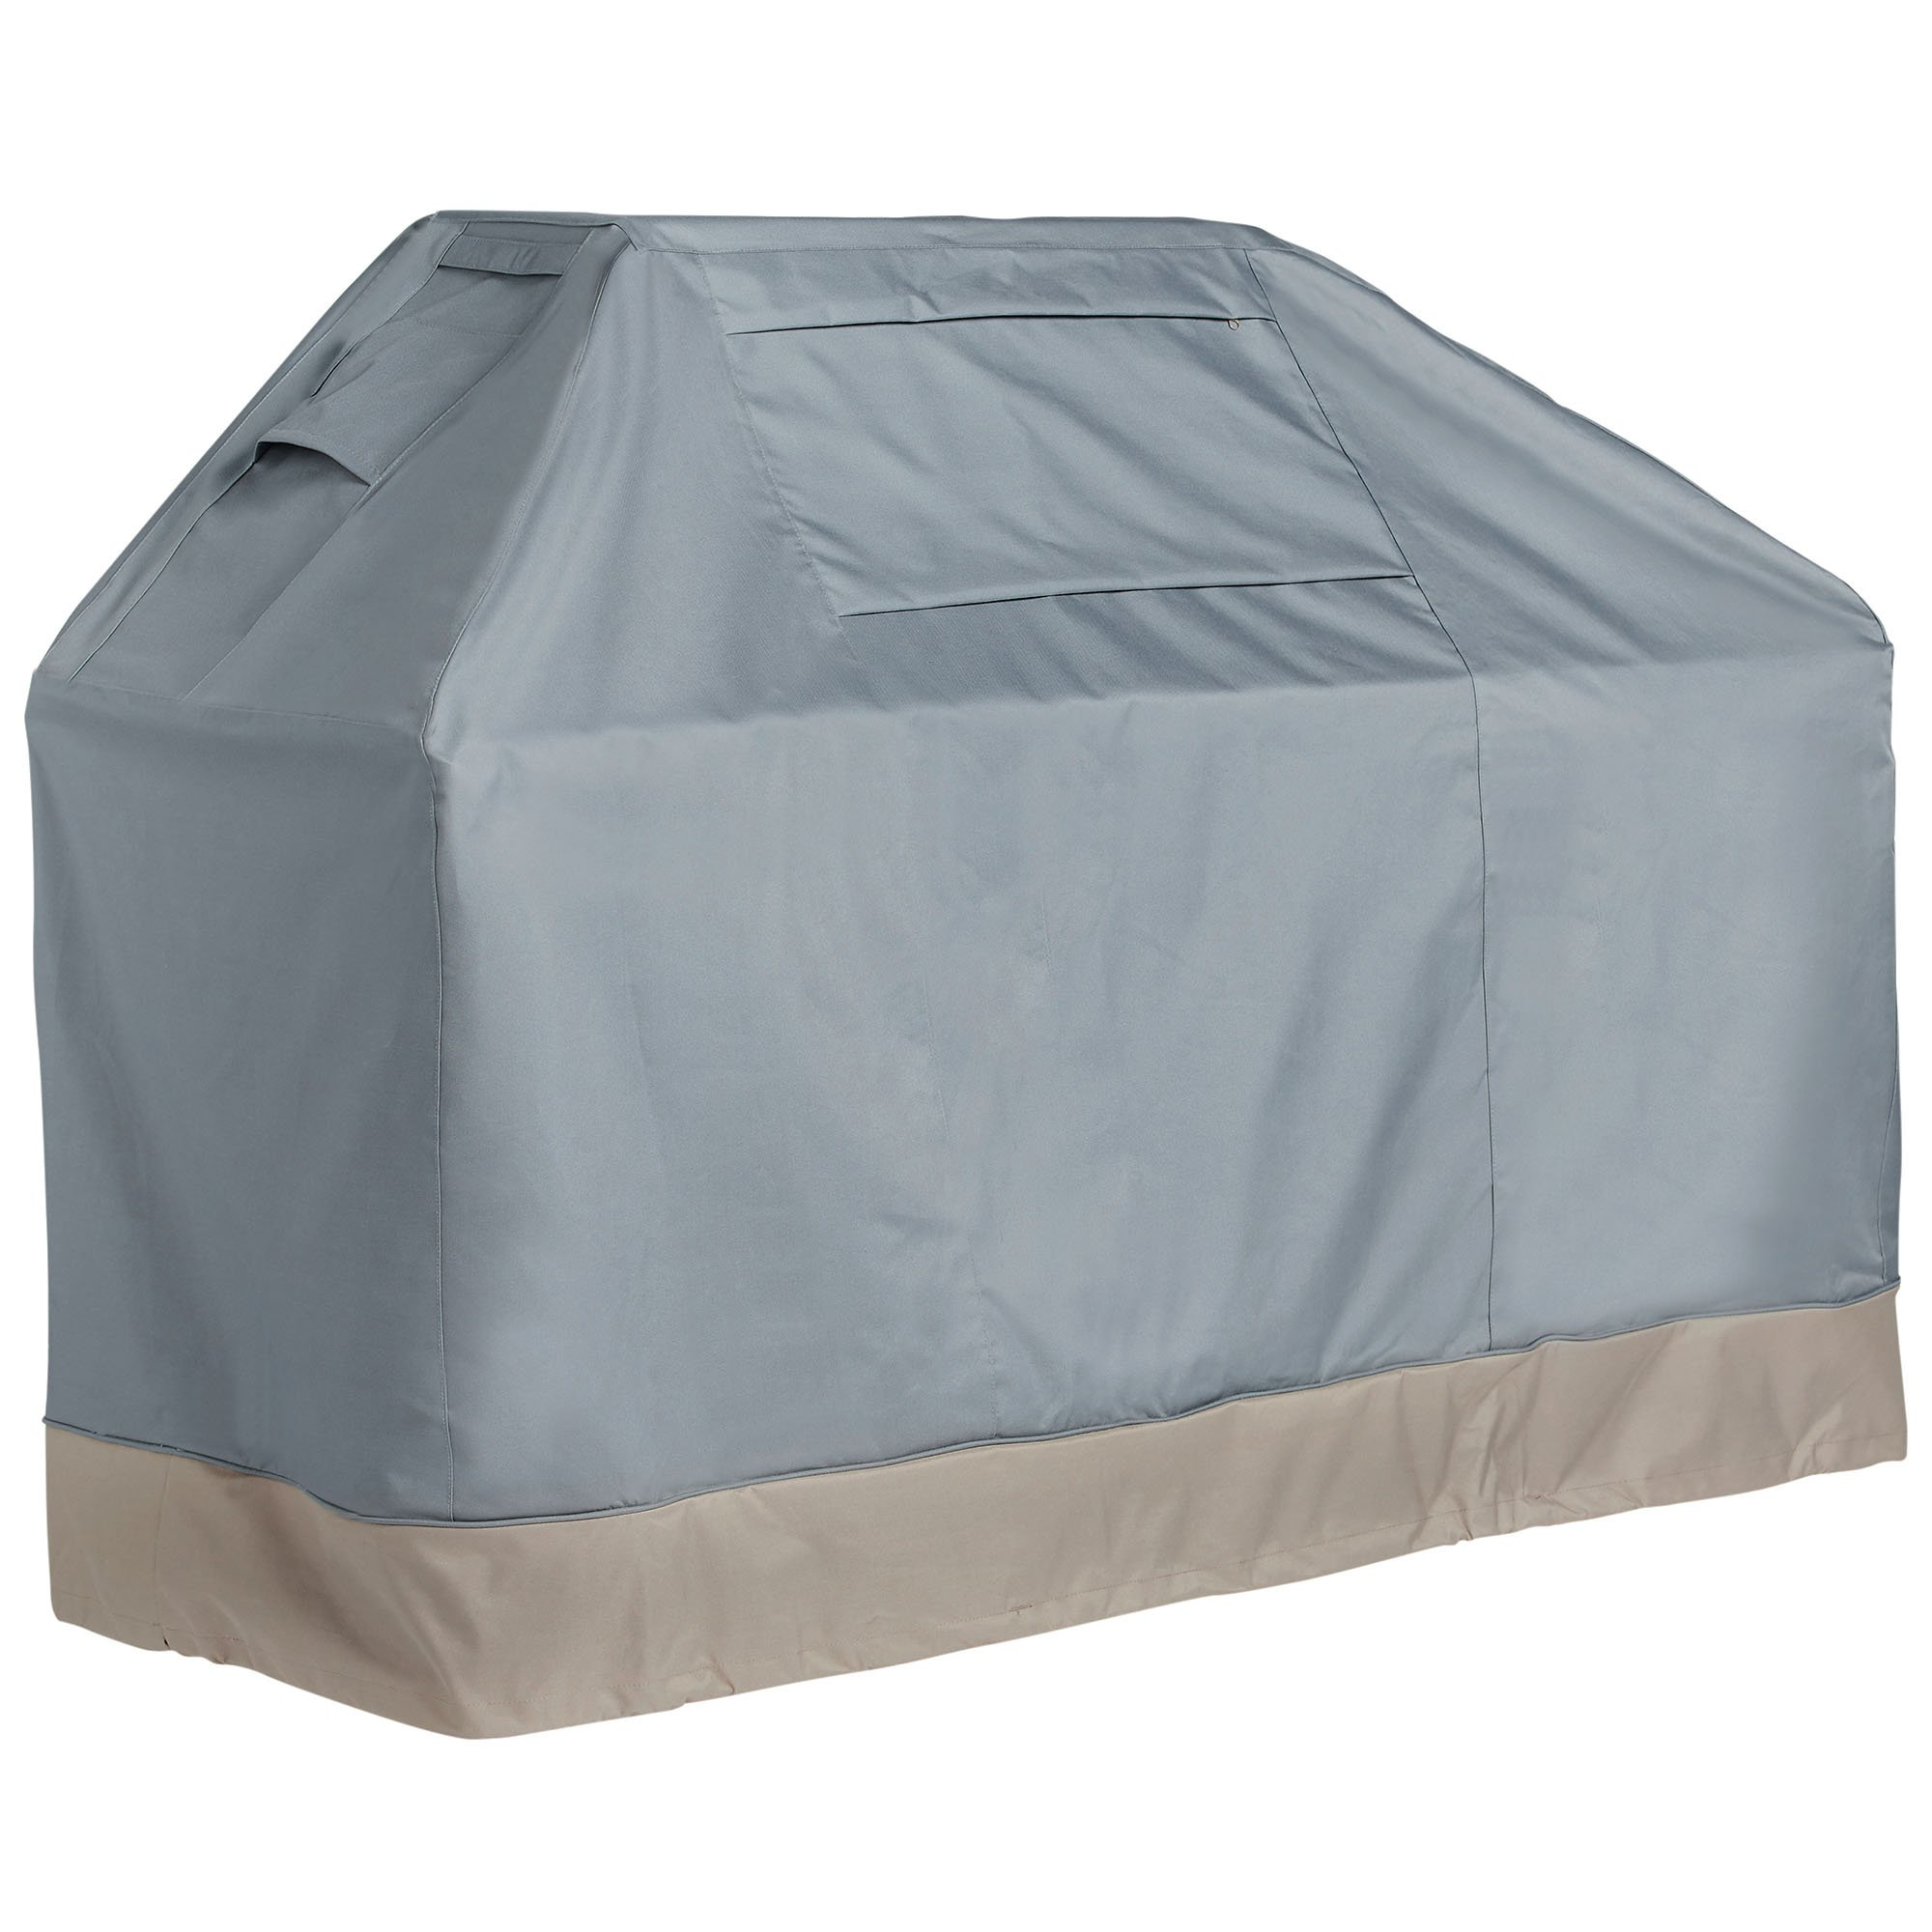 Best Rated in Grill Covers & Helpful Customer Reviews - Amazon.com